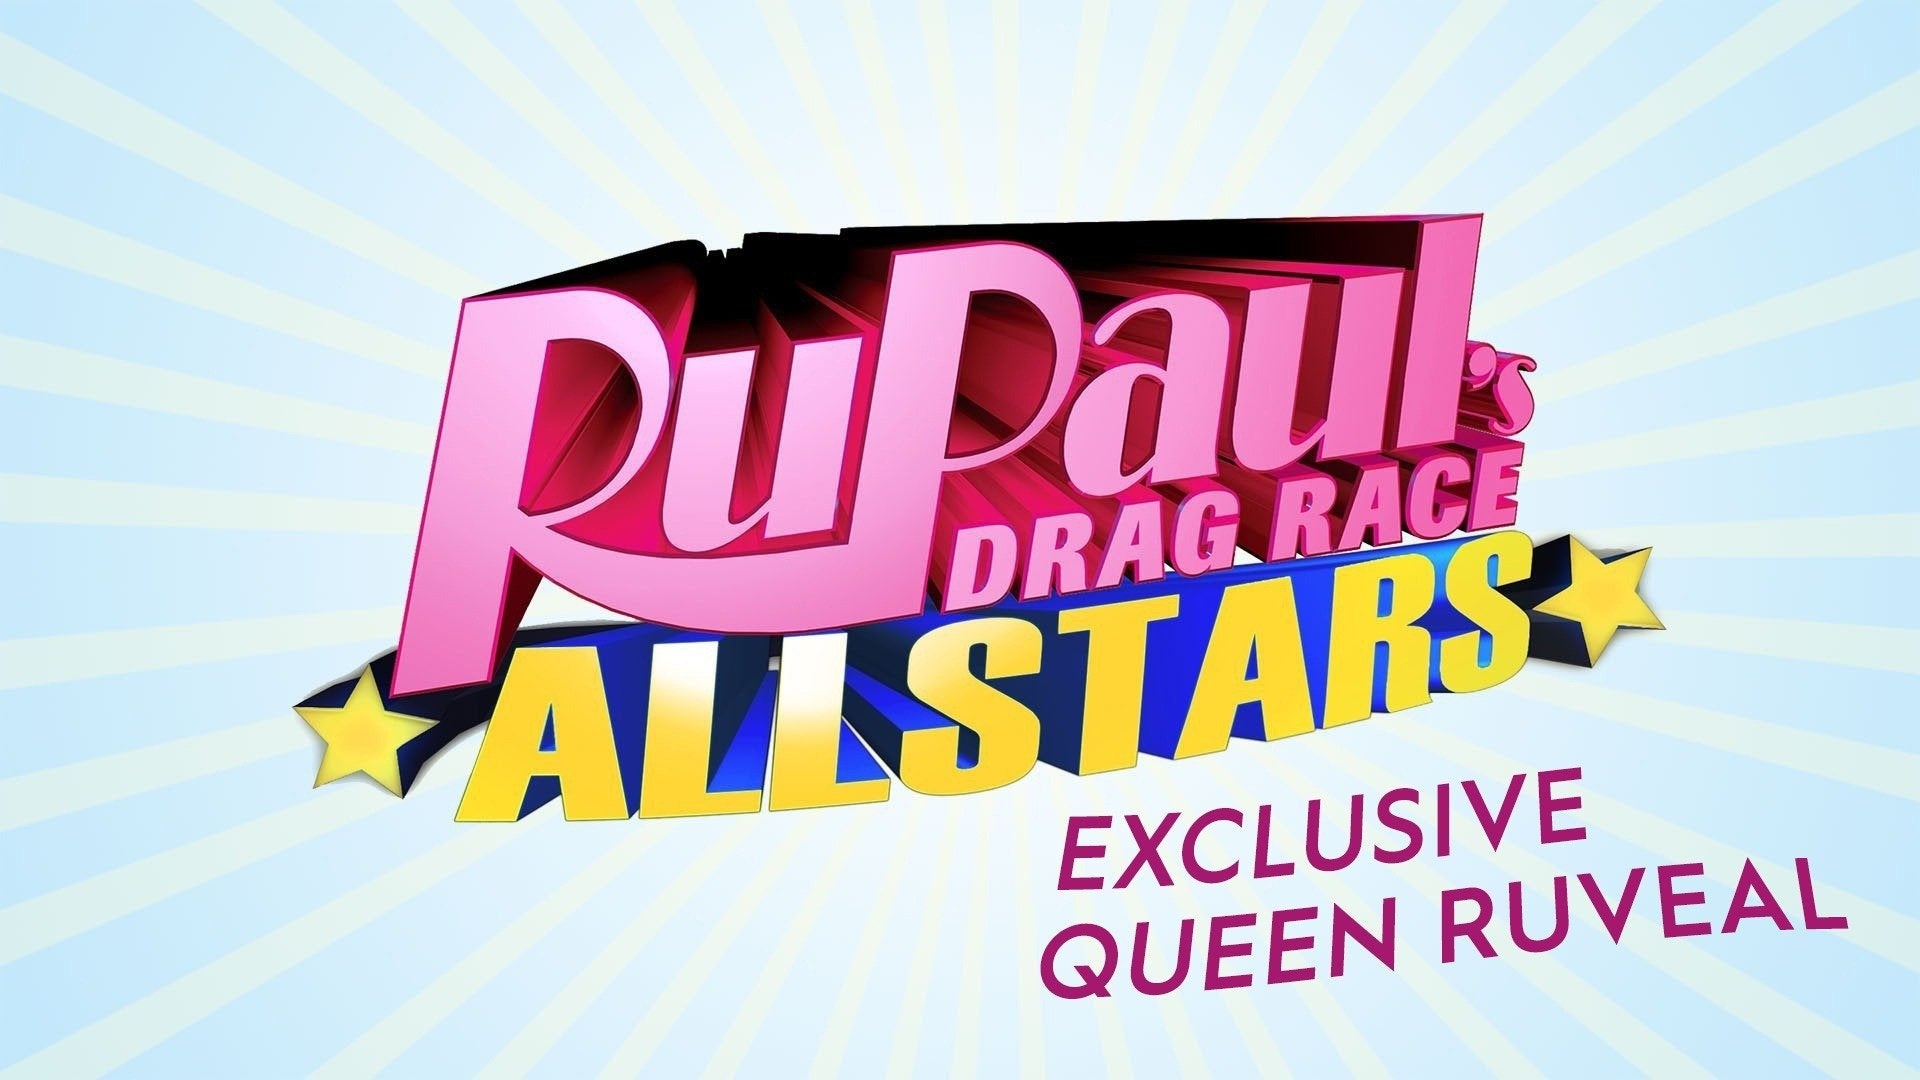 RuPaul's Drag Race All Stars: Exclusive Queen Ruveal